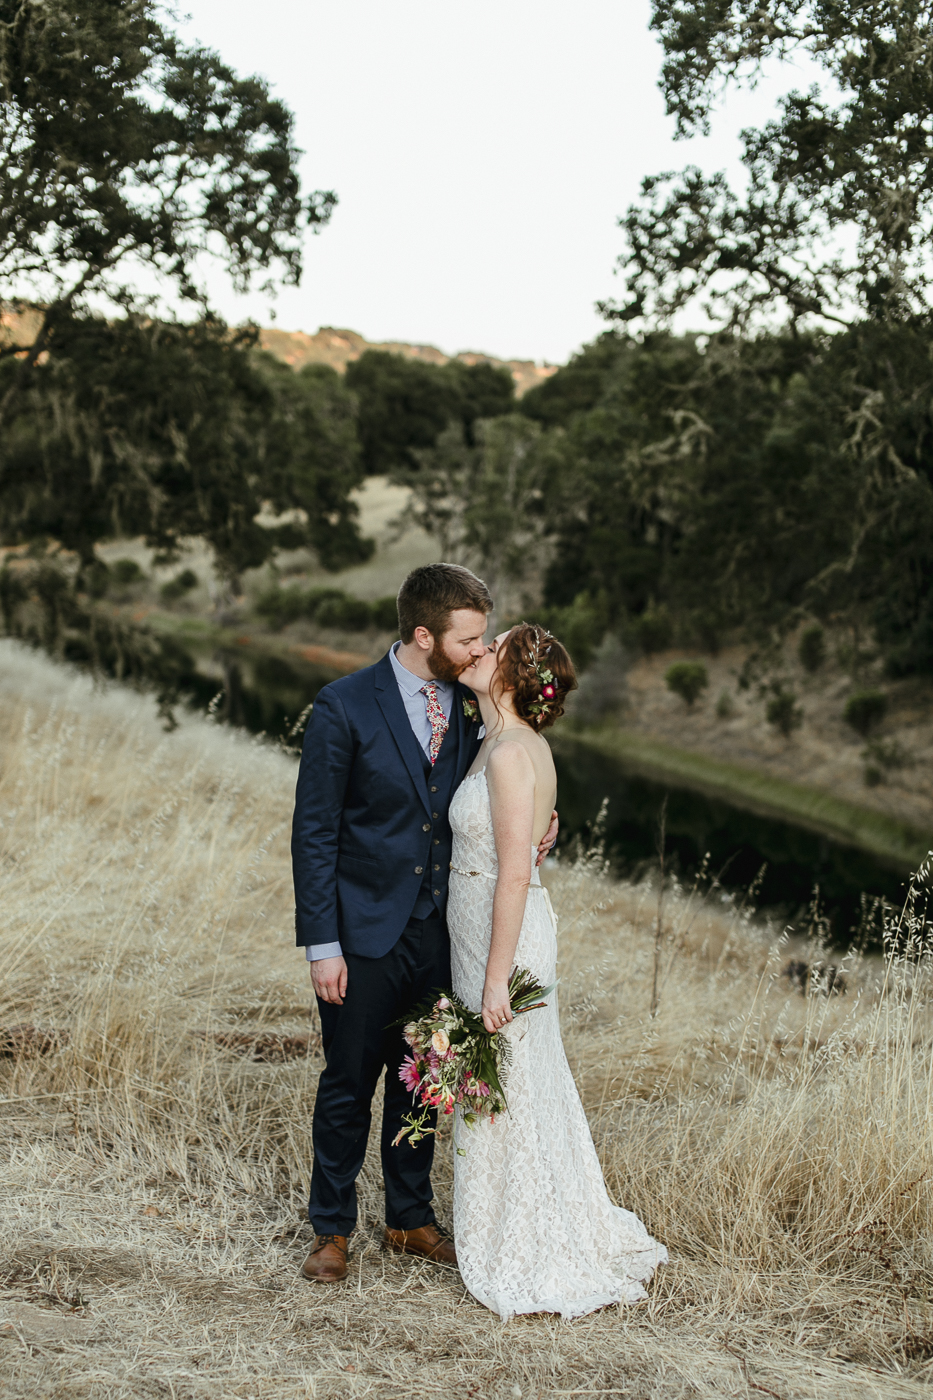 Romantic Vineyard Wedding in Hopland, California